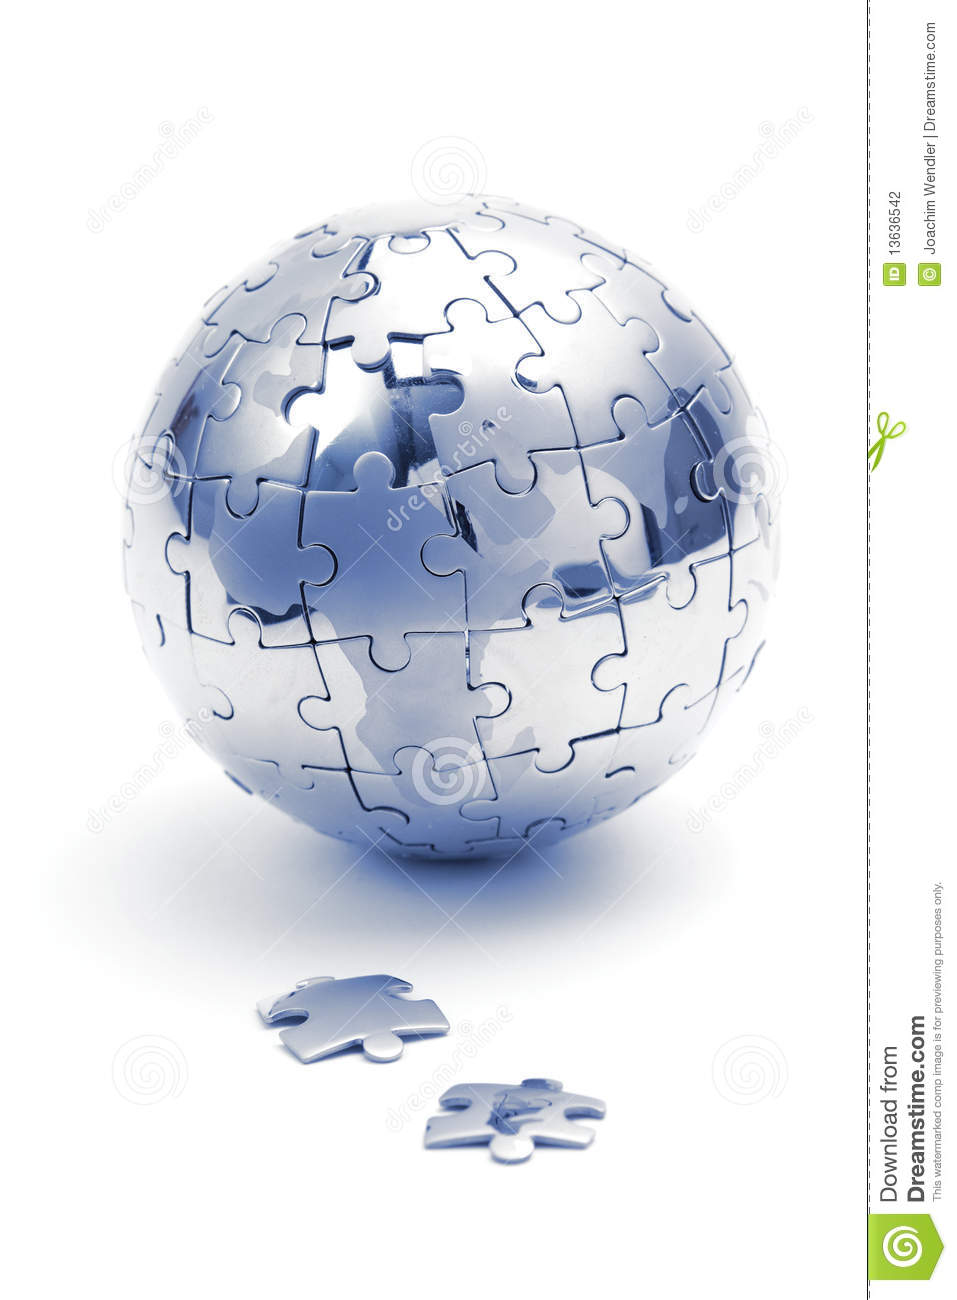 Metal puzzle globe, close-up in blue light